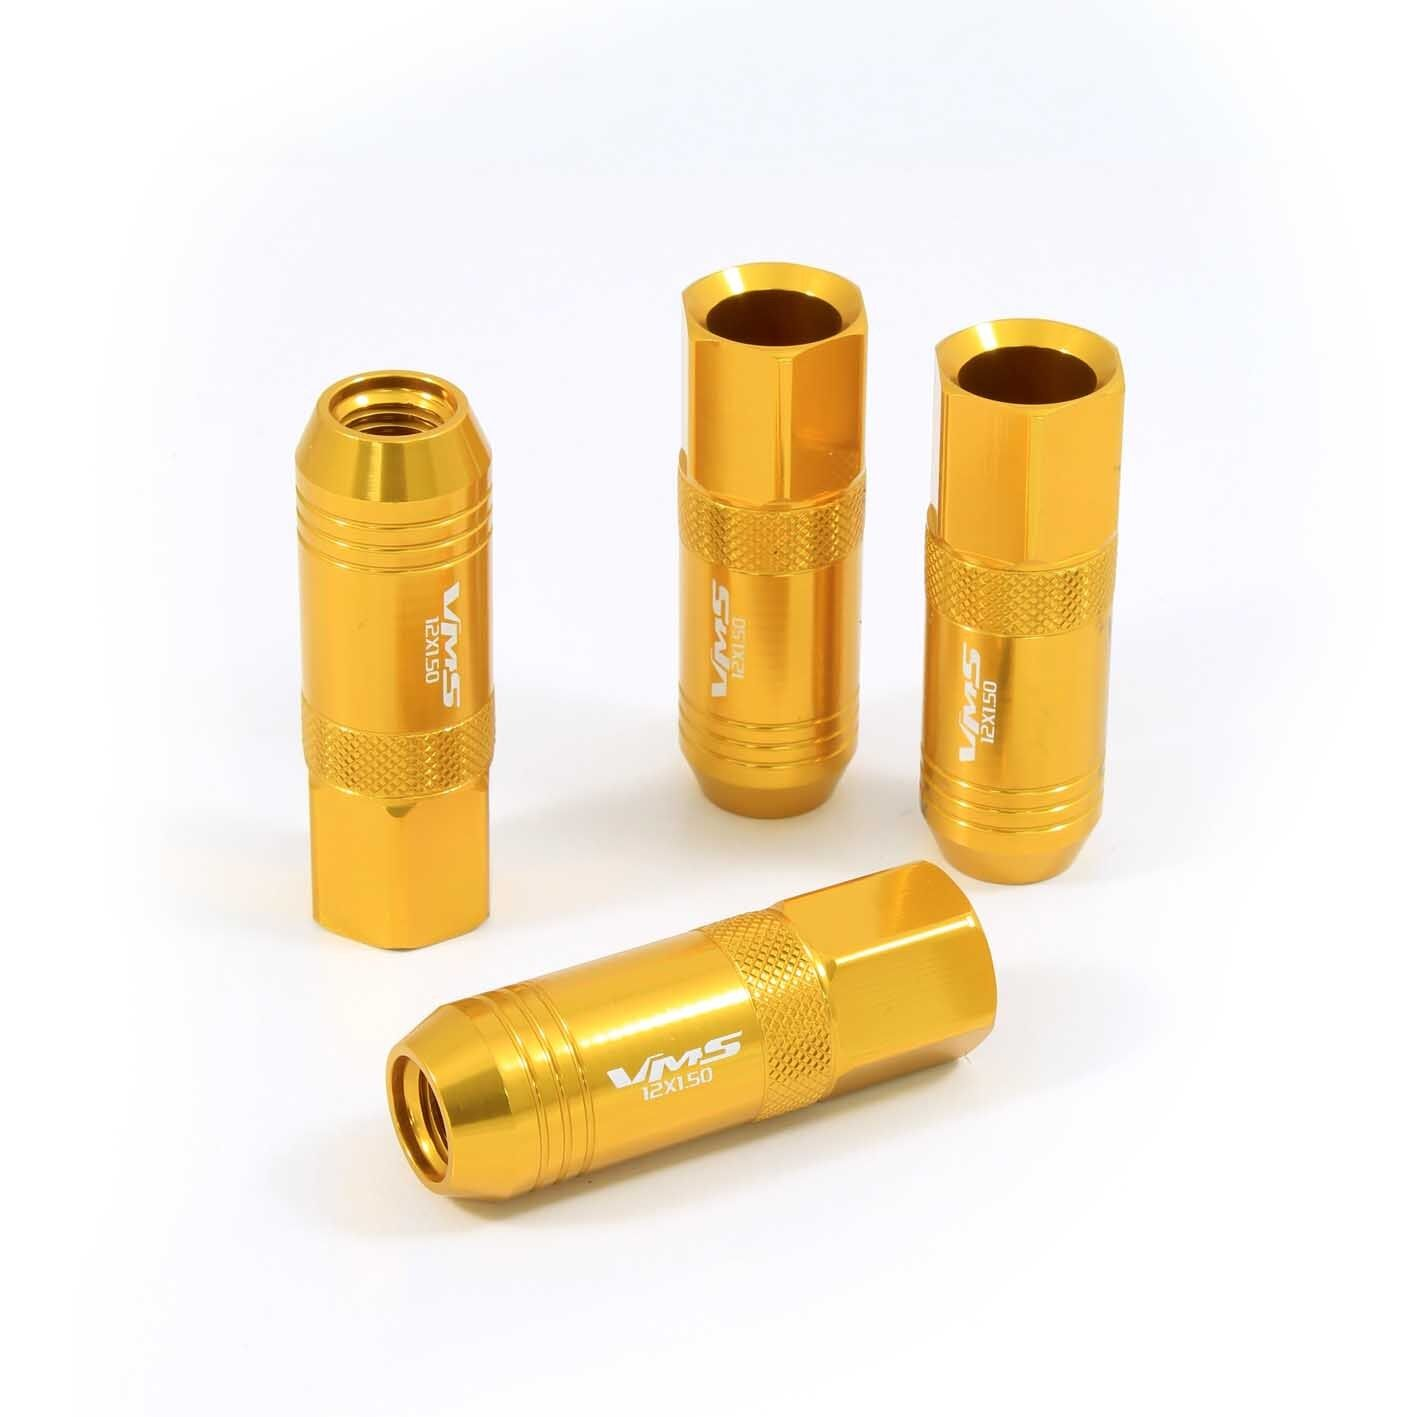 vms 20 gold 60mm aluminum extended tuner lug nuts lugs for wheels rims 12x1 5